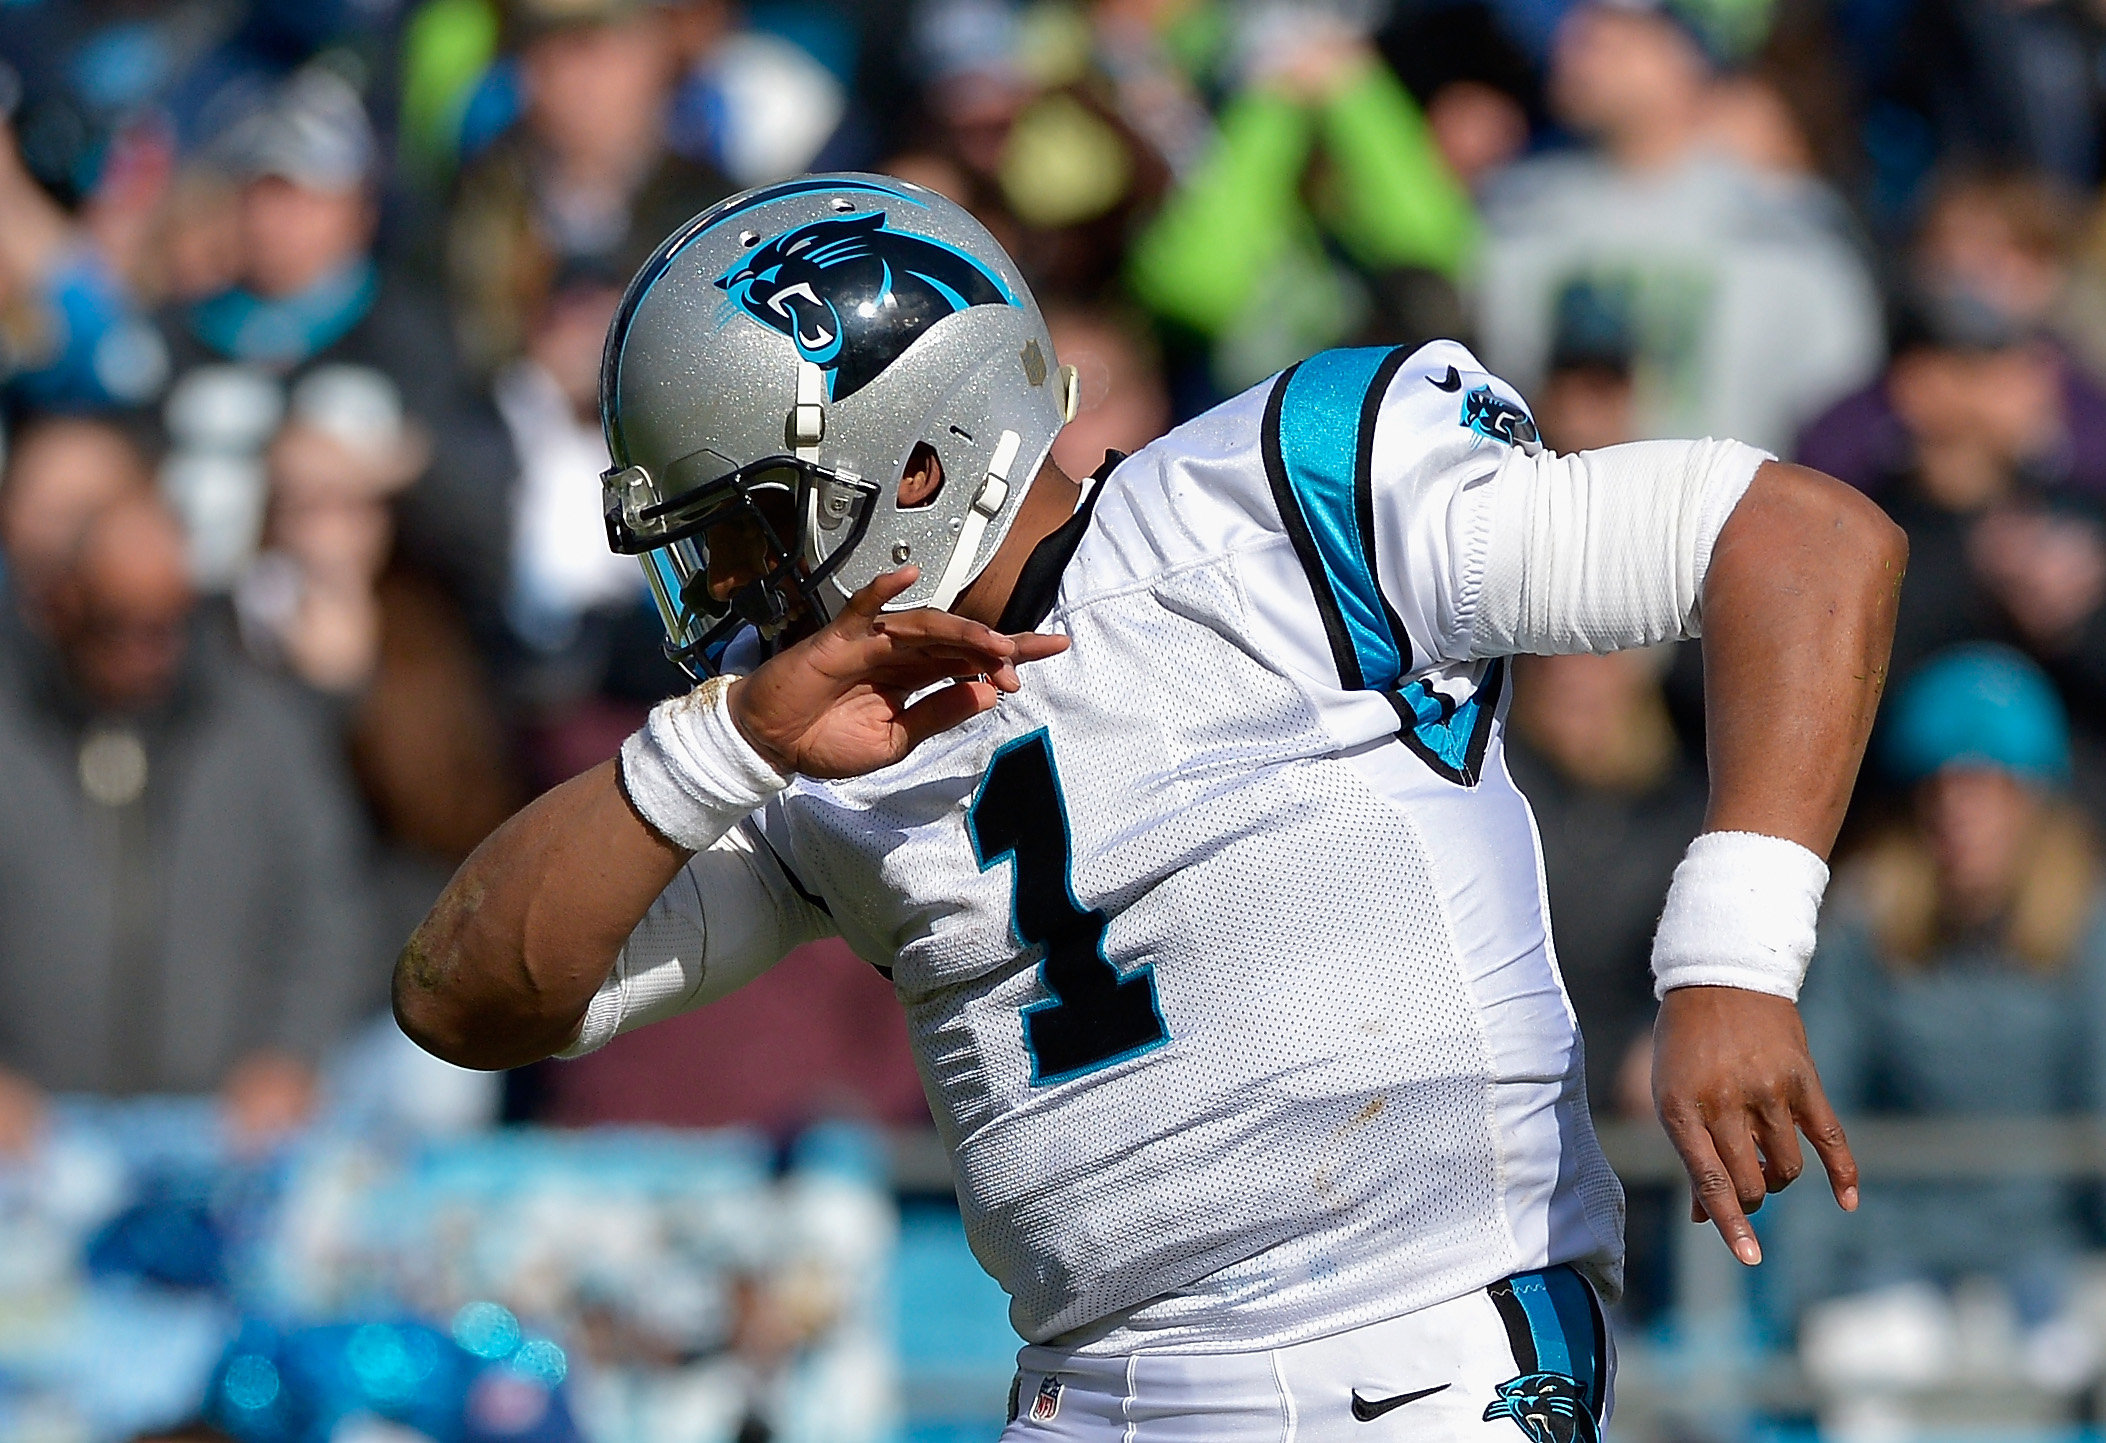 """Cam Newton #1 of the Carolina Panthers shows his trademark """"Dab"""" against the Seattle Seahawks in the 2nd quarter during the NFC Divisional Playoff Game at Bank of America Stadium on January 17, 2016 in Charlotte, North Carolina. (Photo by Grant Halverson/Getty Images)"""